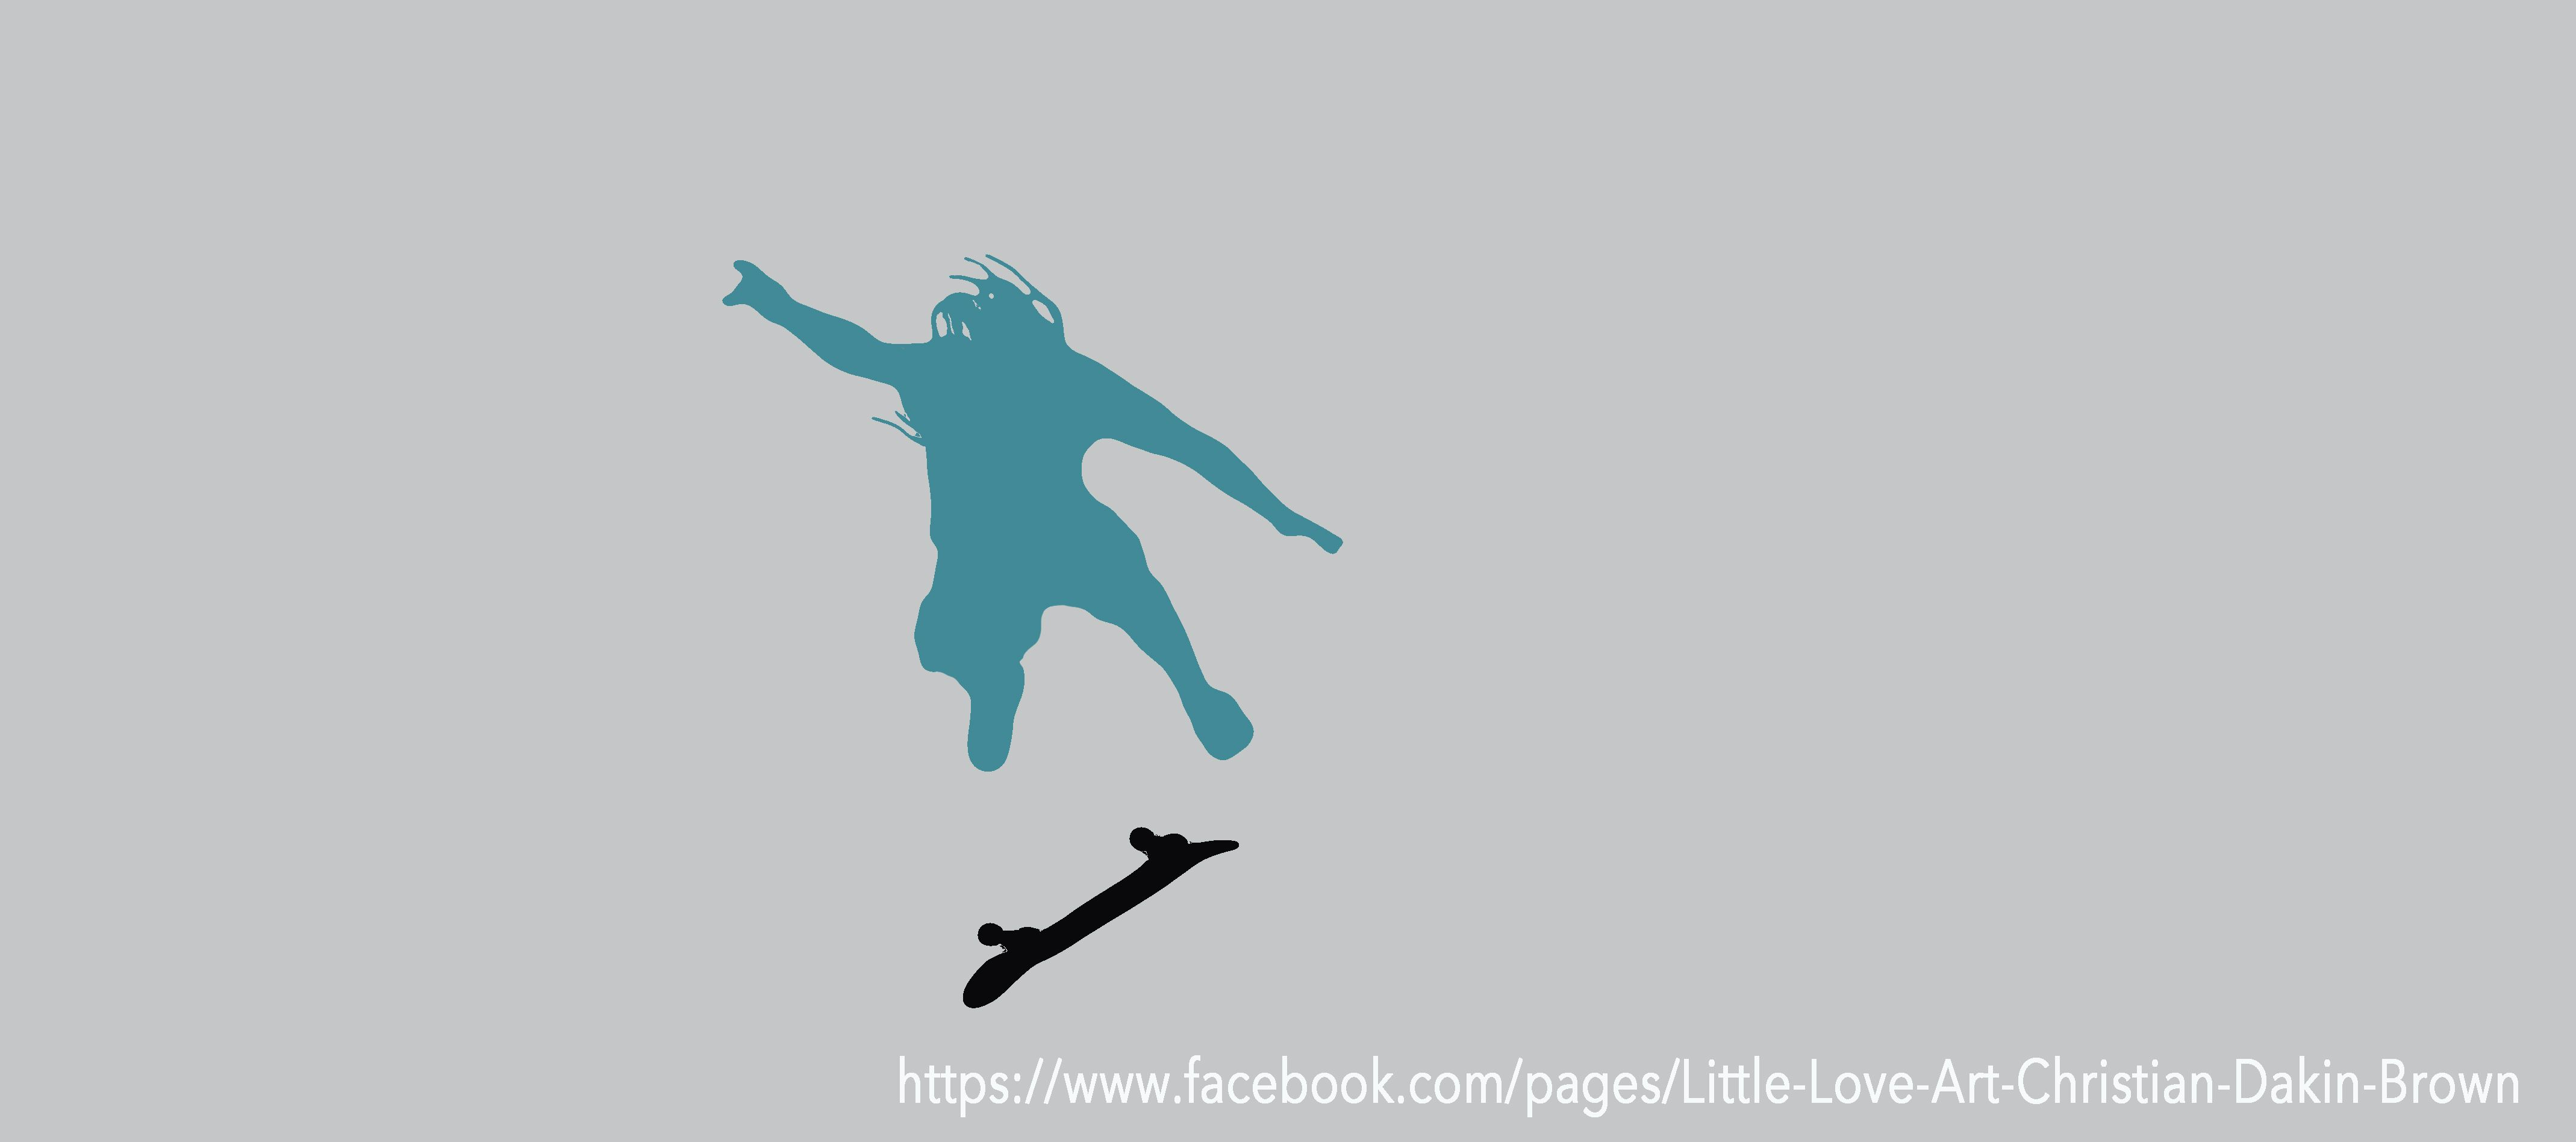 Great Silhouette of my pal skate boarding :)